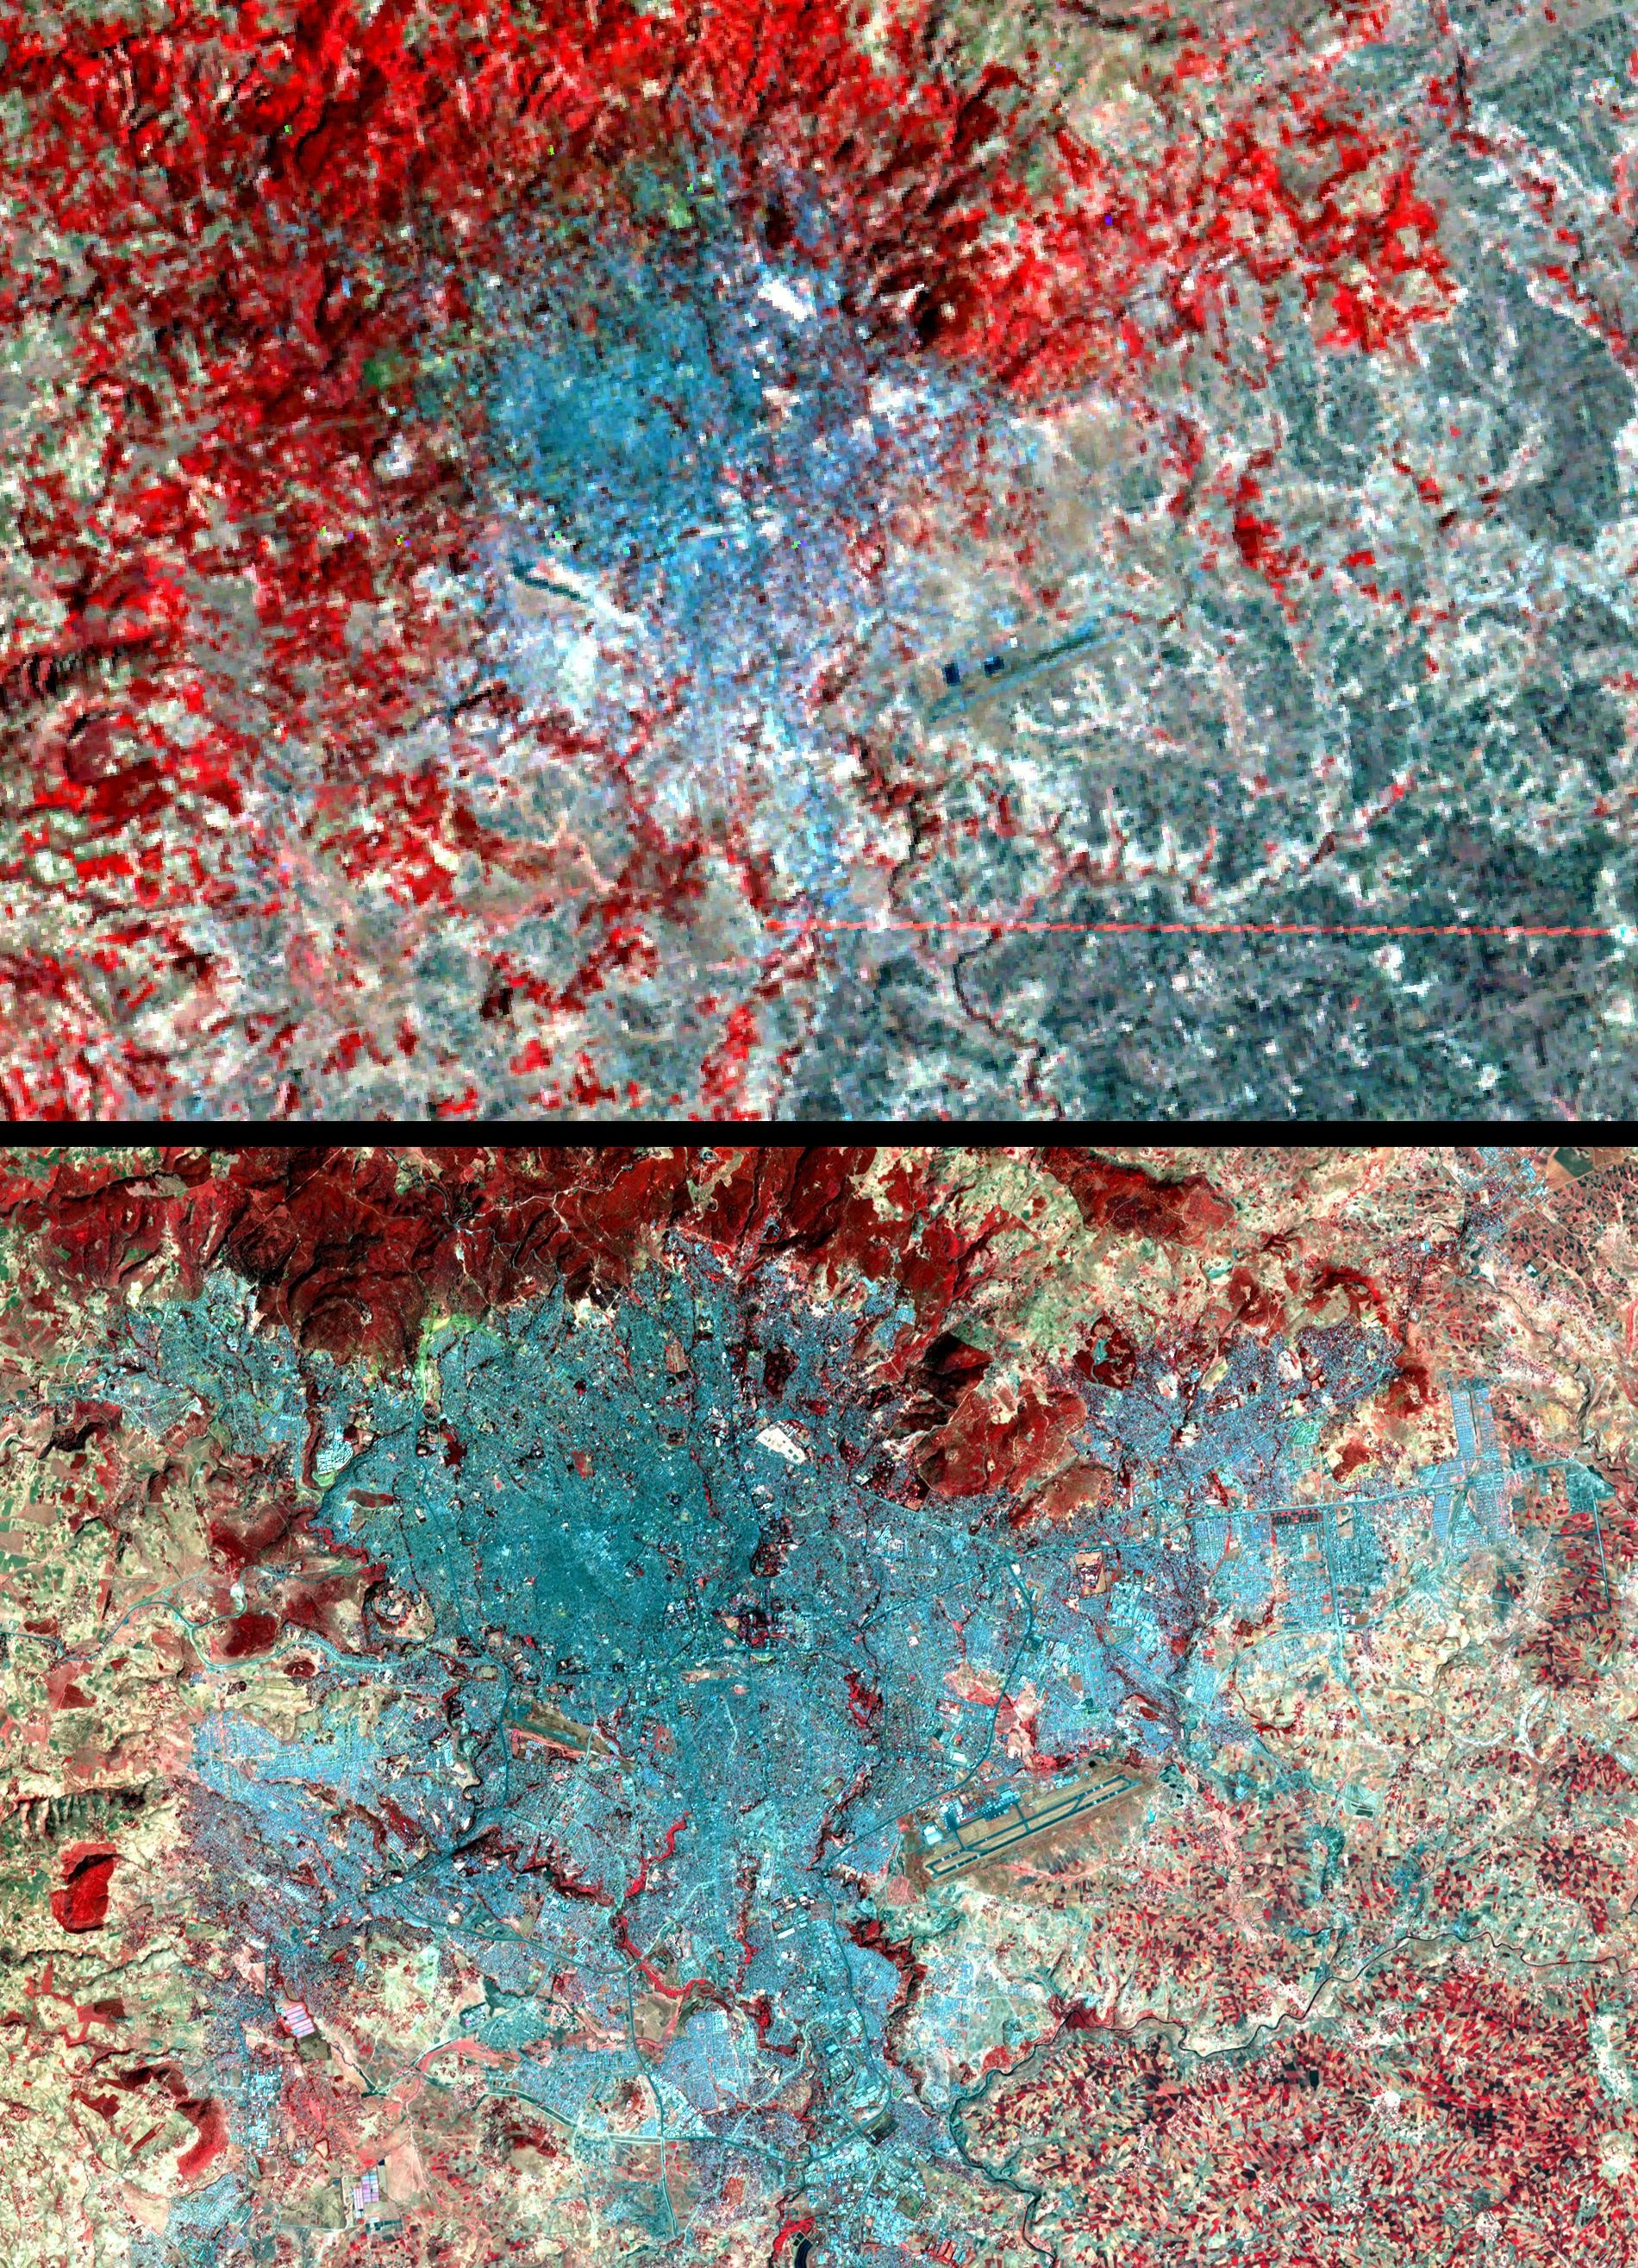 Addis Ababa seen from space, in 1973 and 2007.